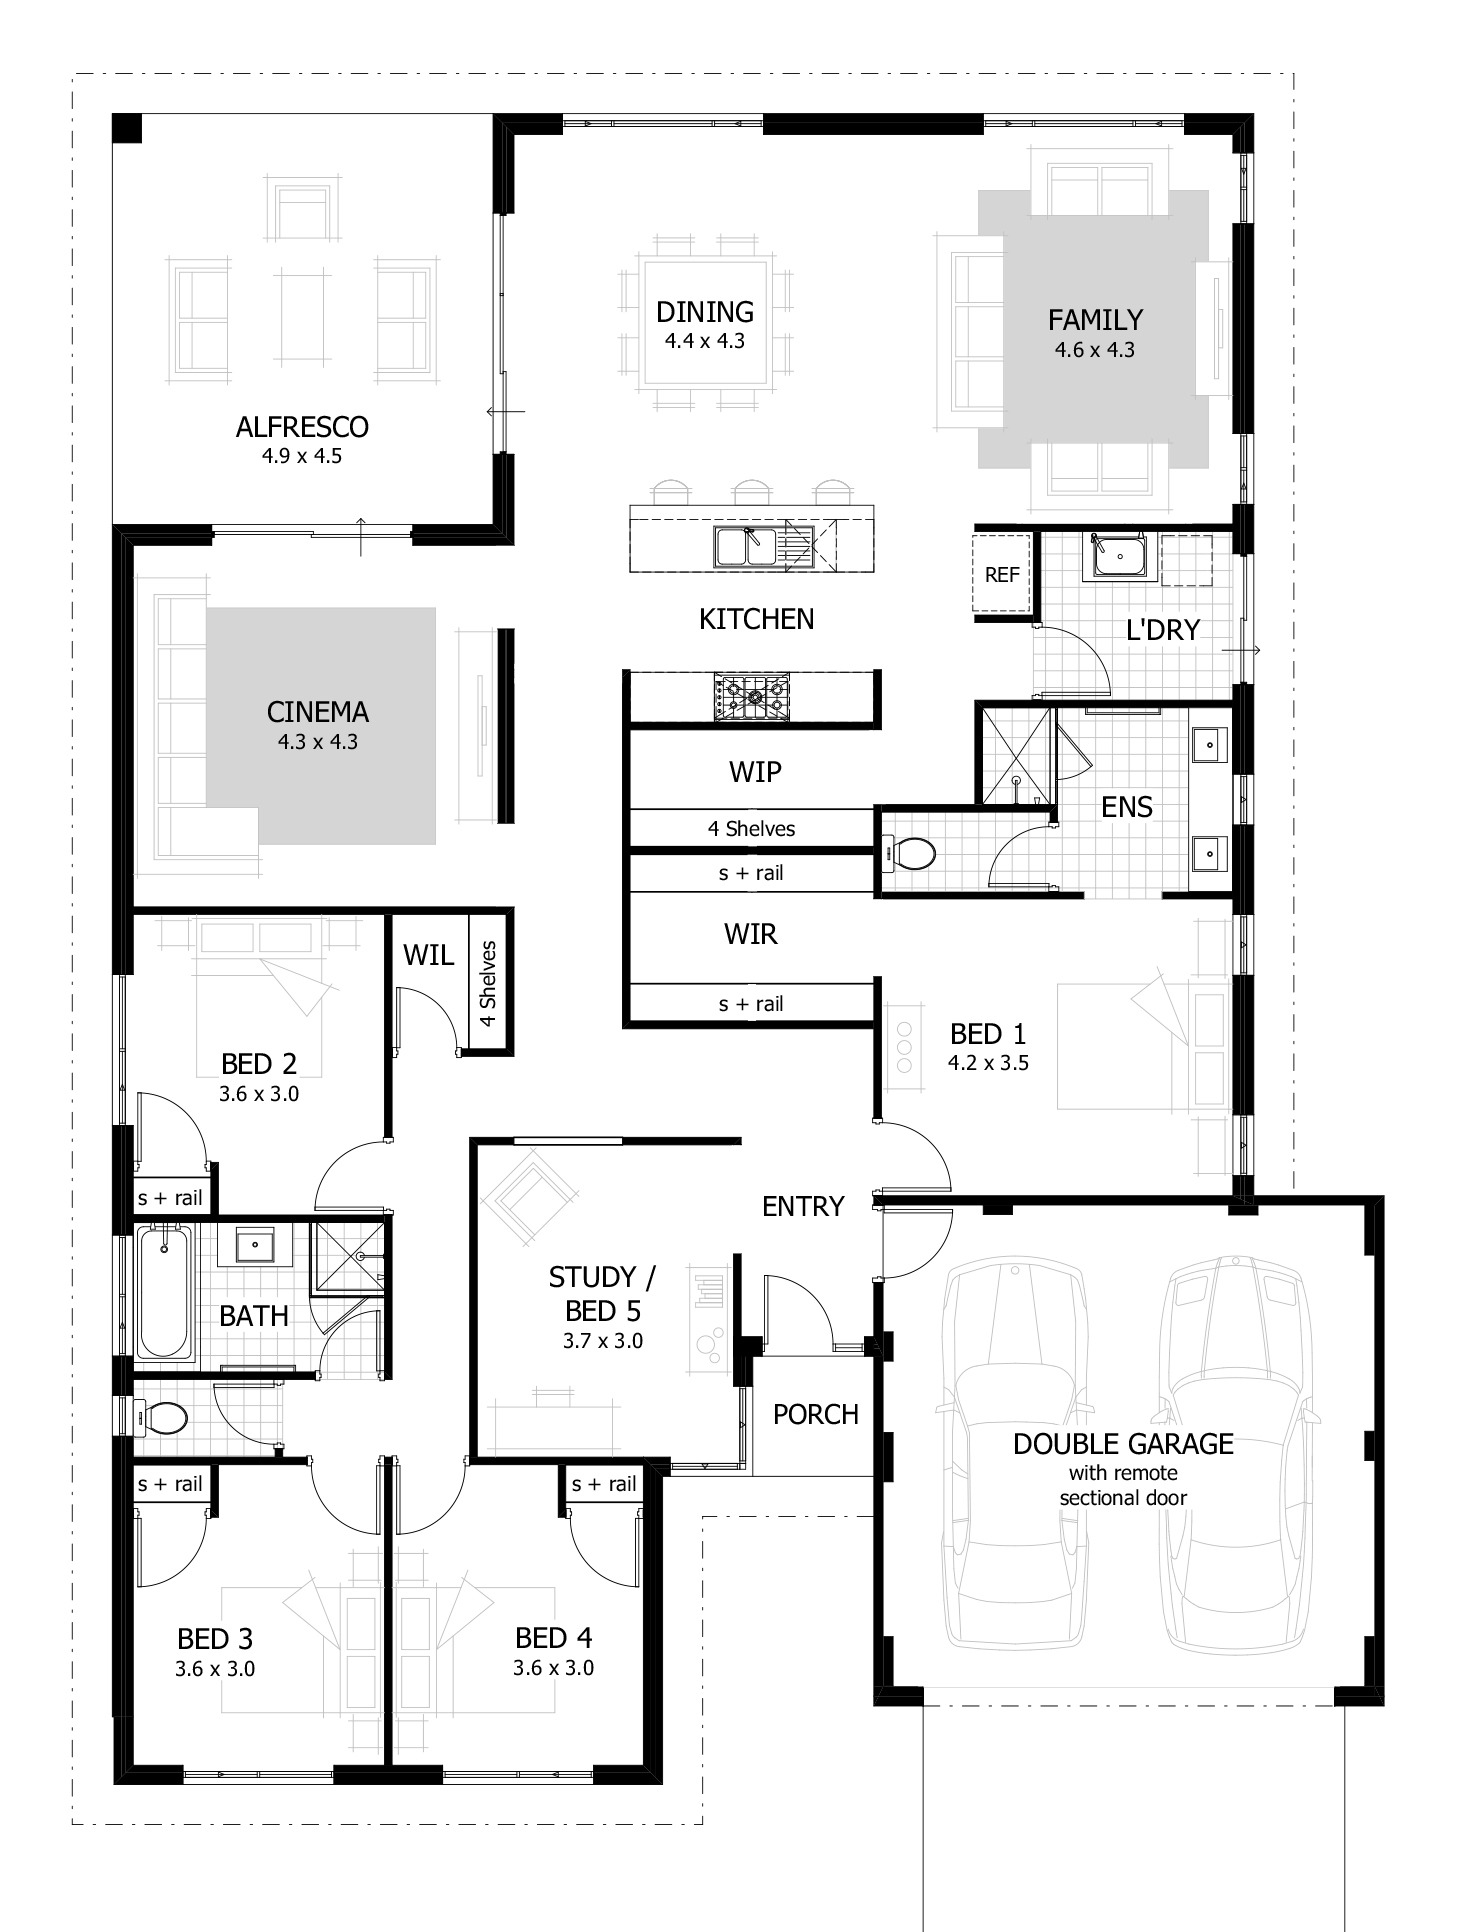 Design House Floor Plans Luxury Home Floor Plan Designs with Amazing Ranch Style